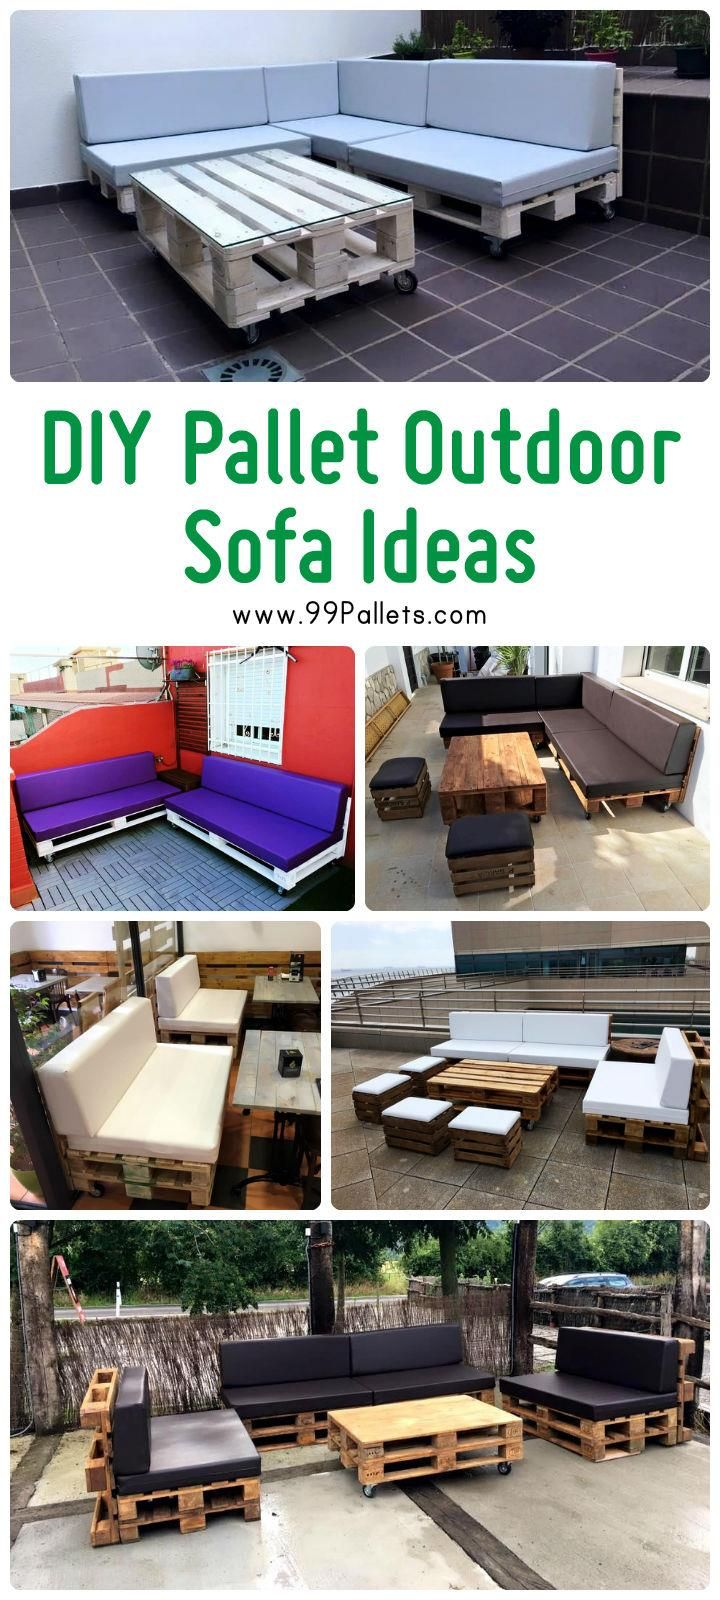 Diy pallet sofa with table 99 pallets - Diy Pallet Outdoor Sofa Ideas 99 Pallets